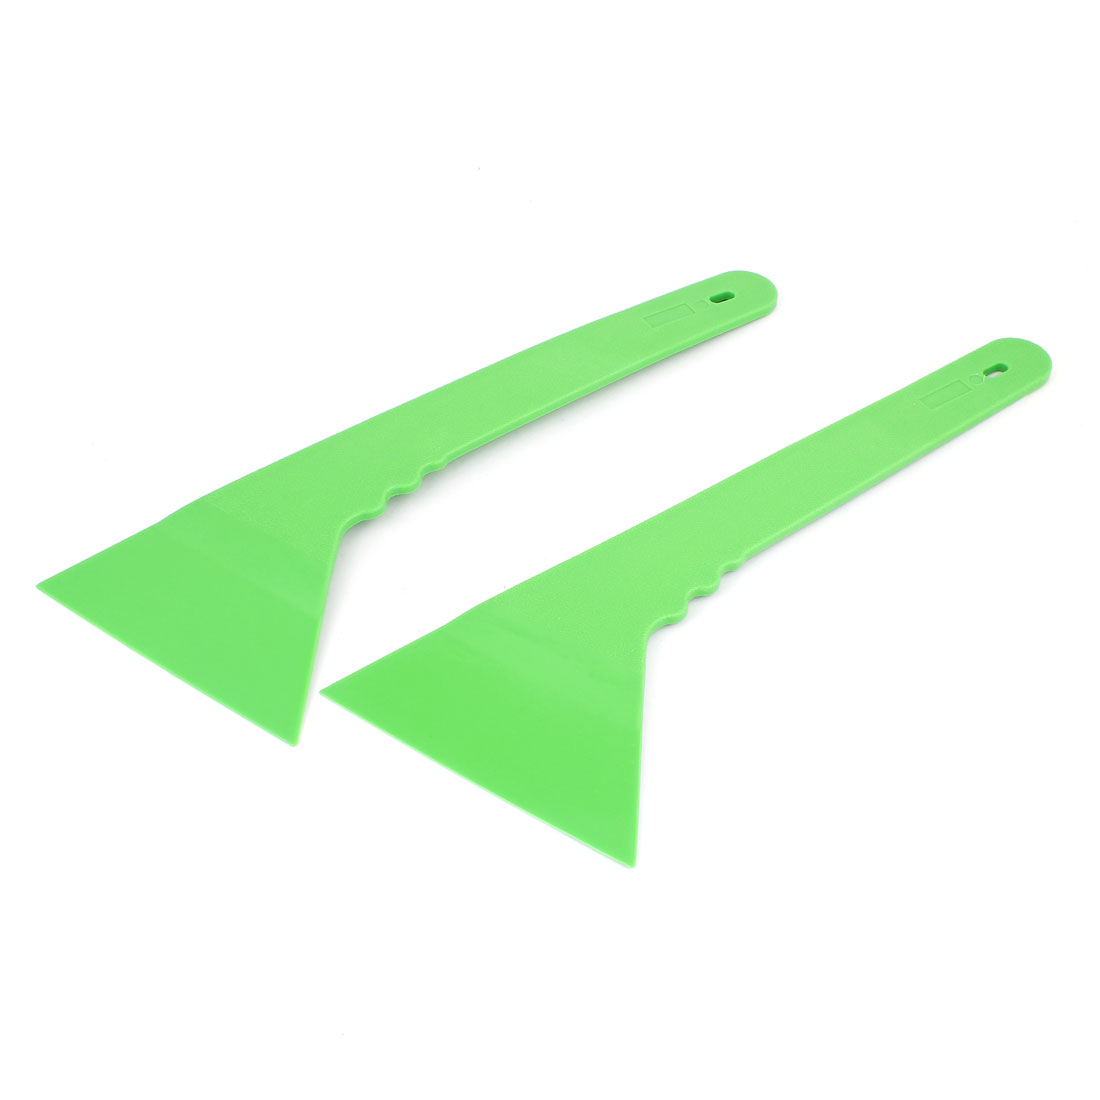 Unique Bargains Car Auto Window Windshield Plastic Tint Film Scraper Cleaning Tool Green 2 Pcs